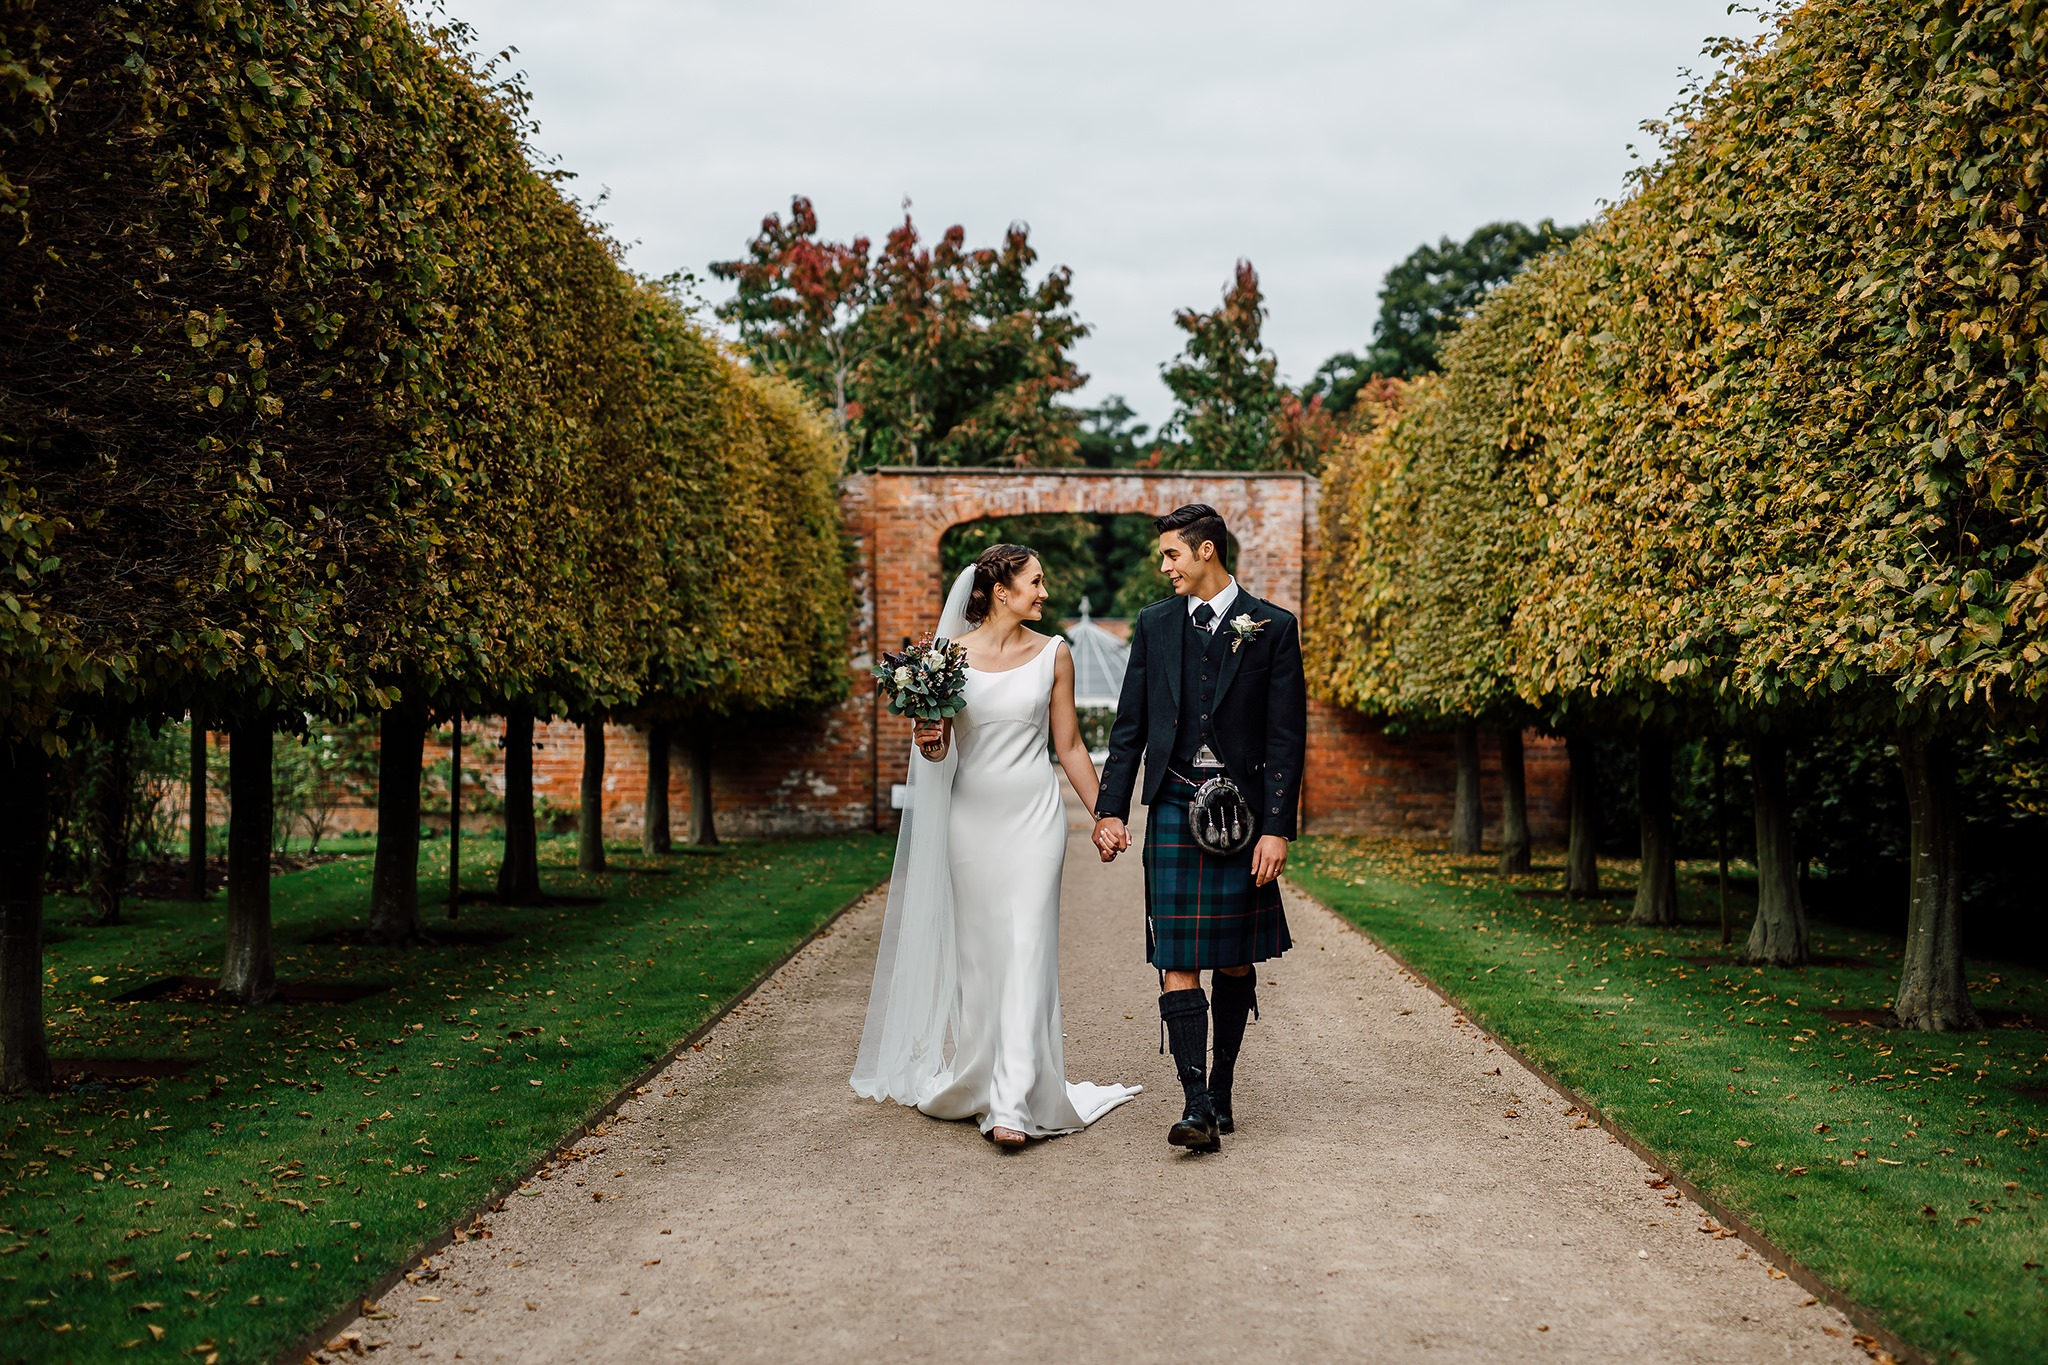 Autumn weddings at Combermere Abbey in the gardens